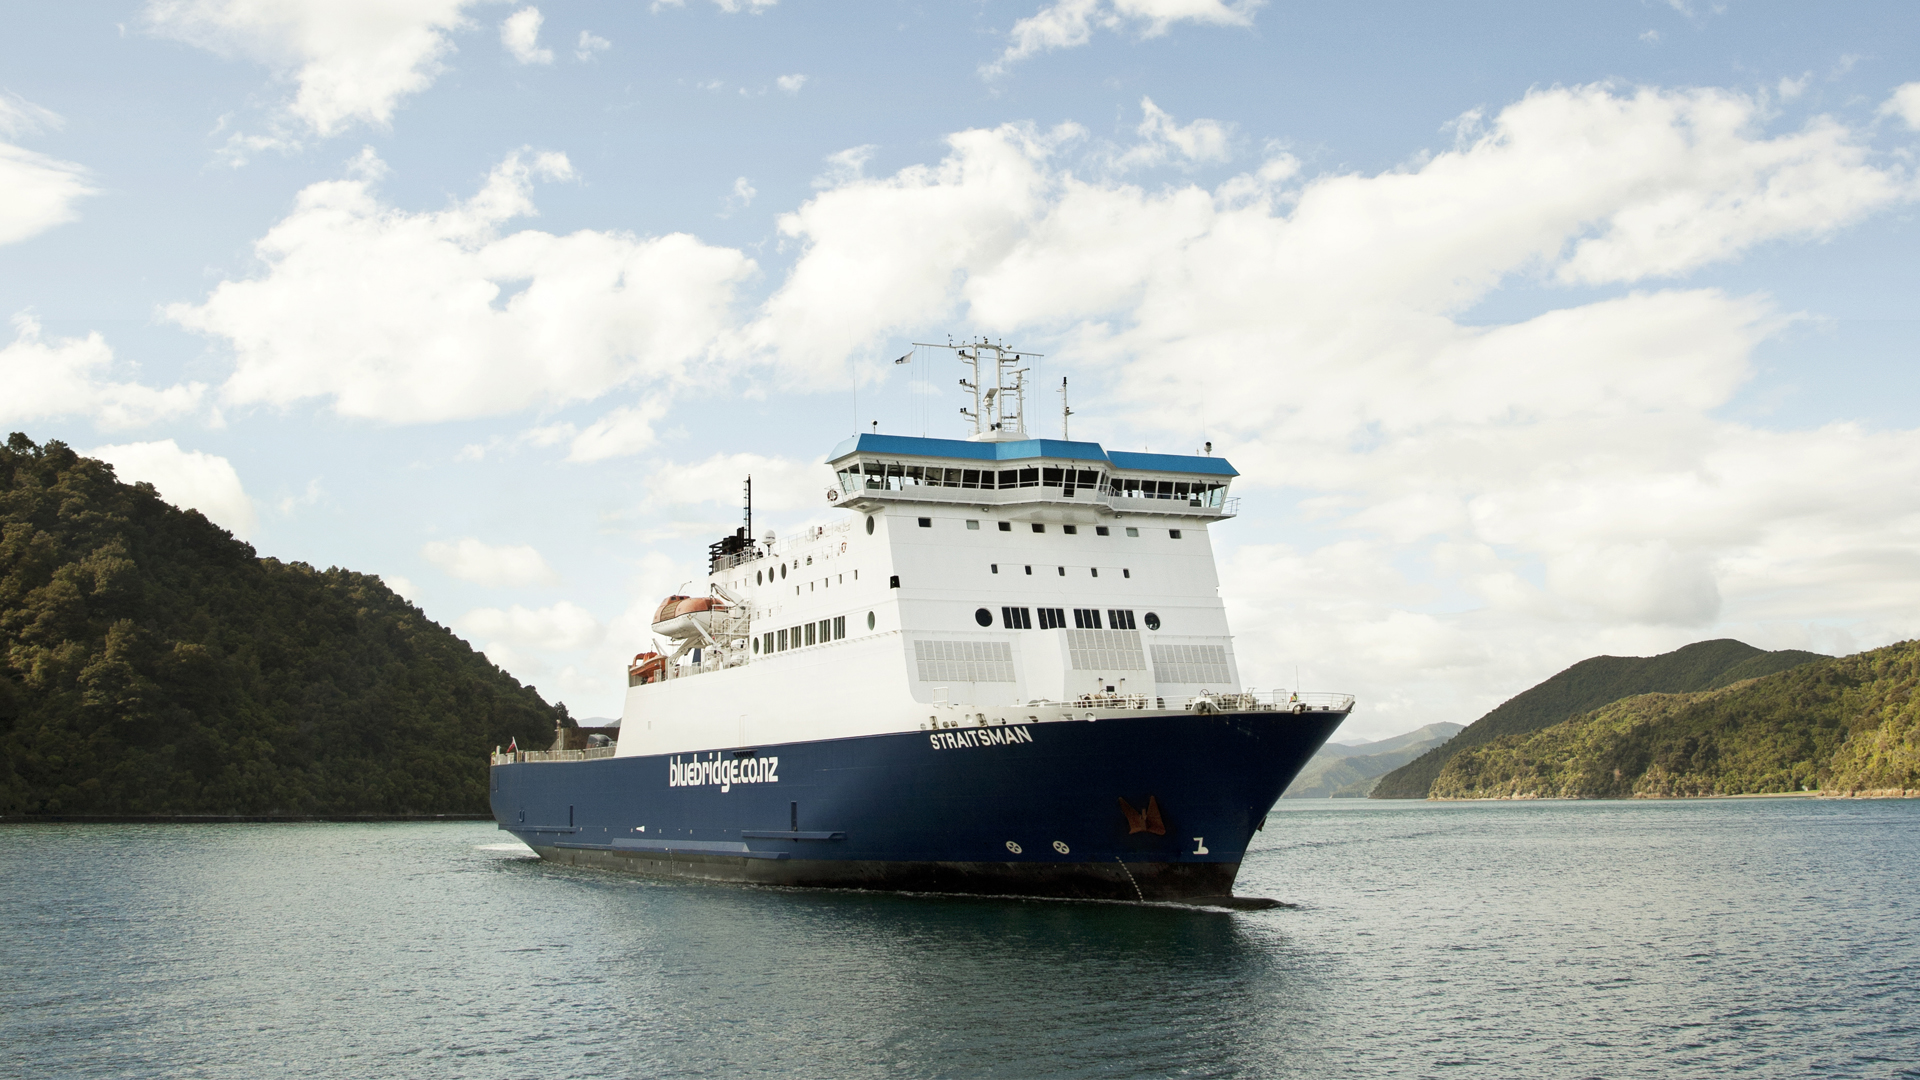 Bluebridge Straitsman Ship in Marlborough Sounds